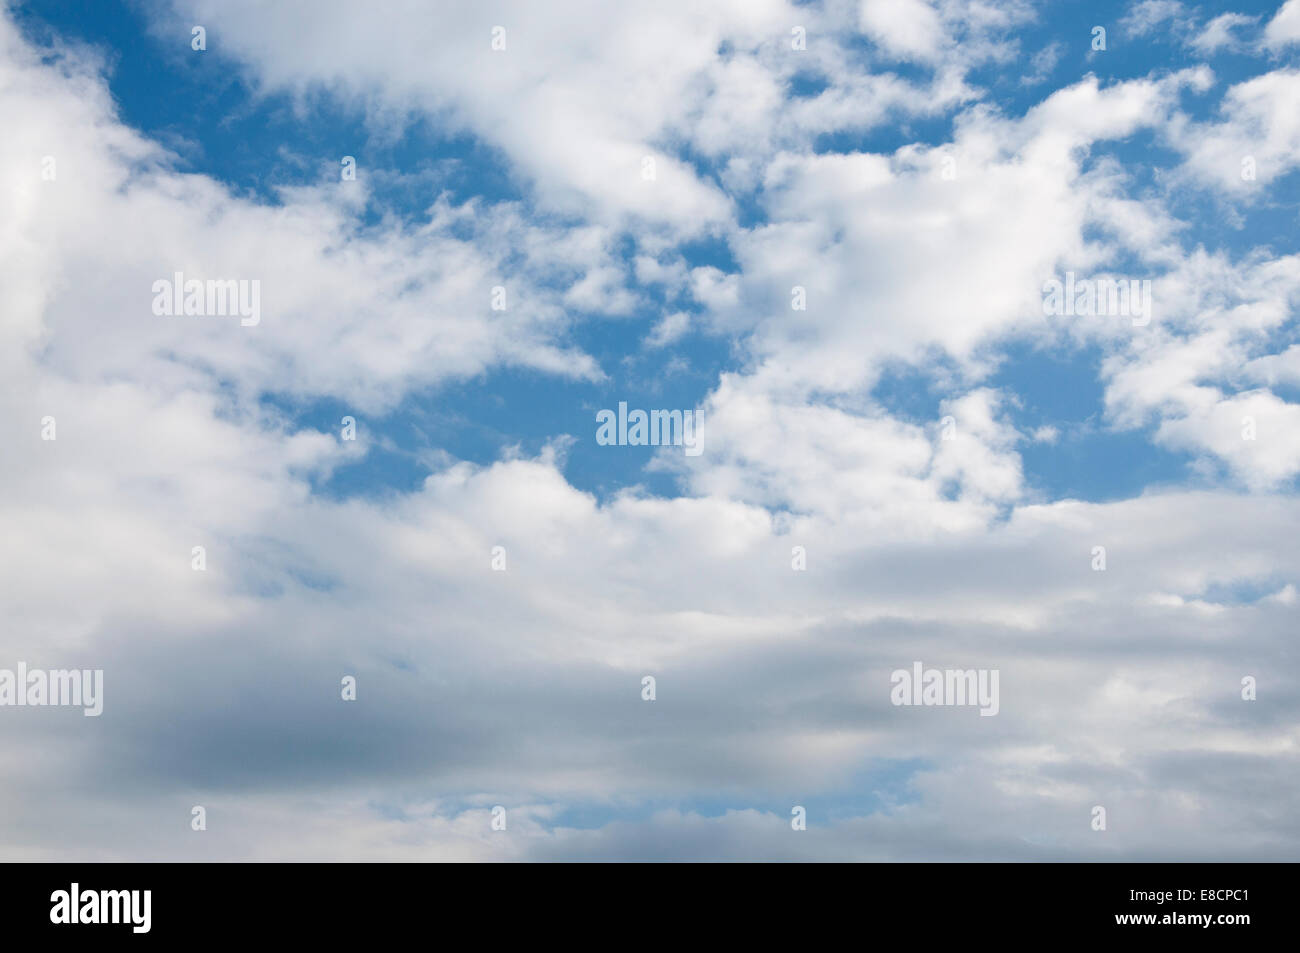 Blue sky with intermittent cloud cover - Stock Image